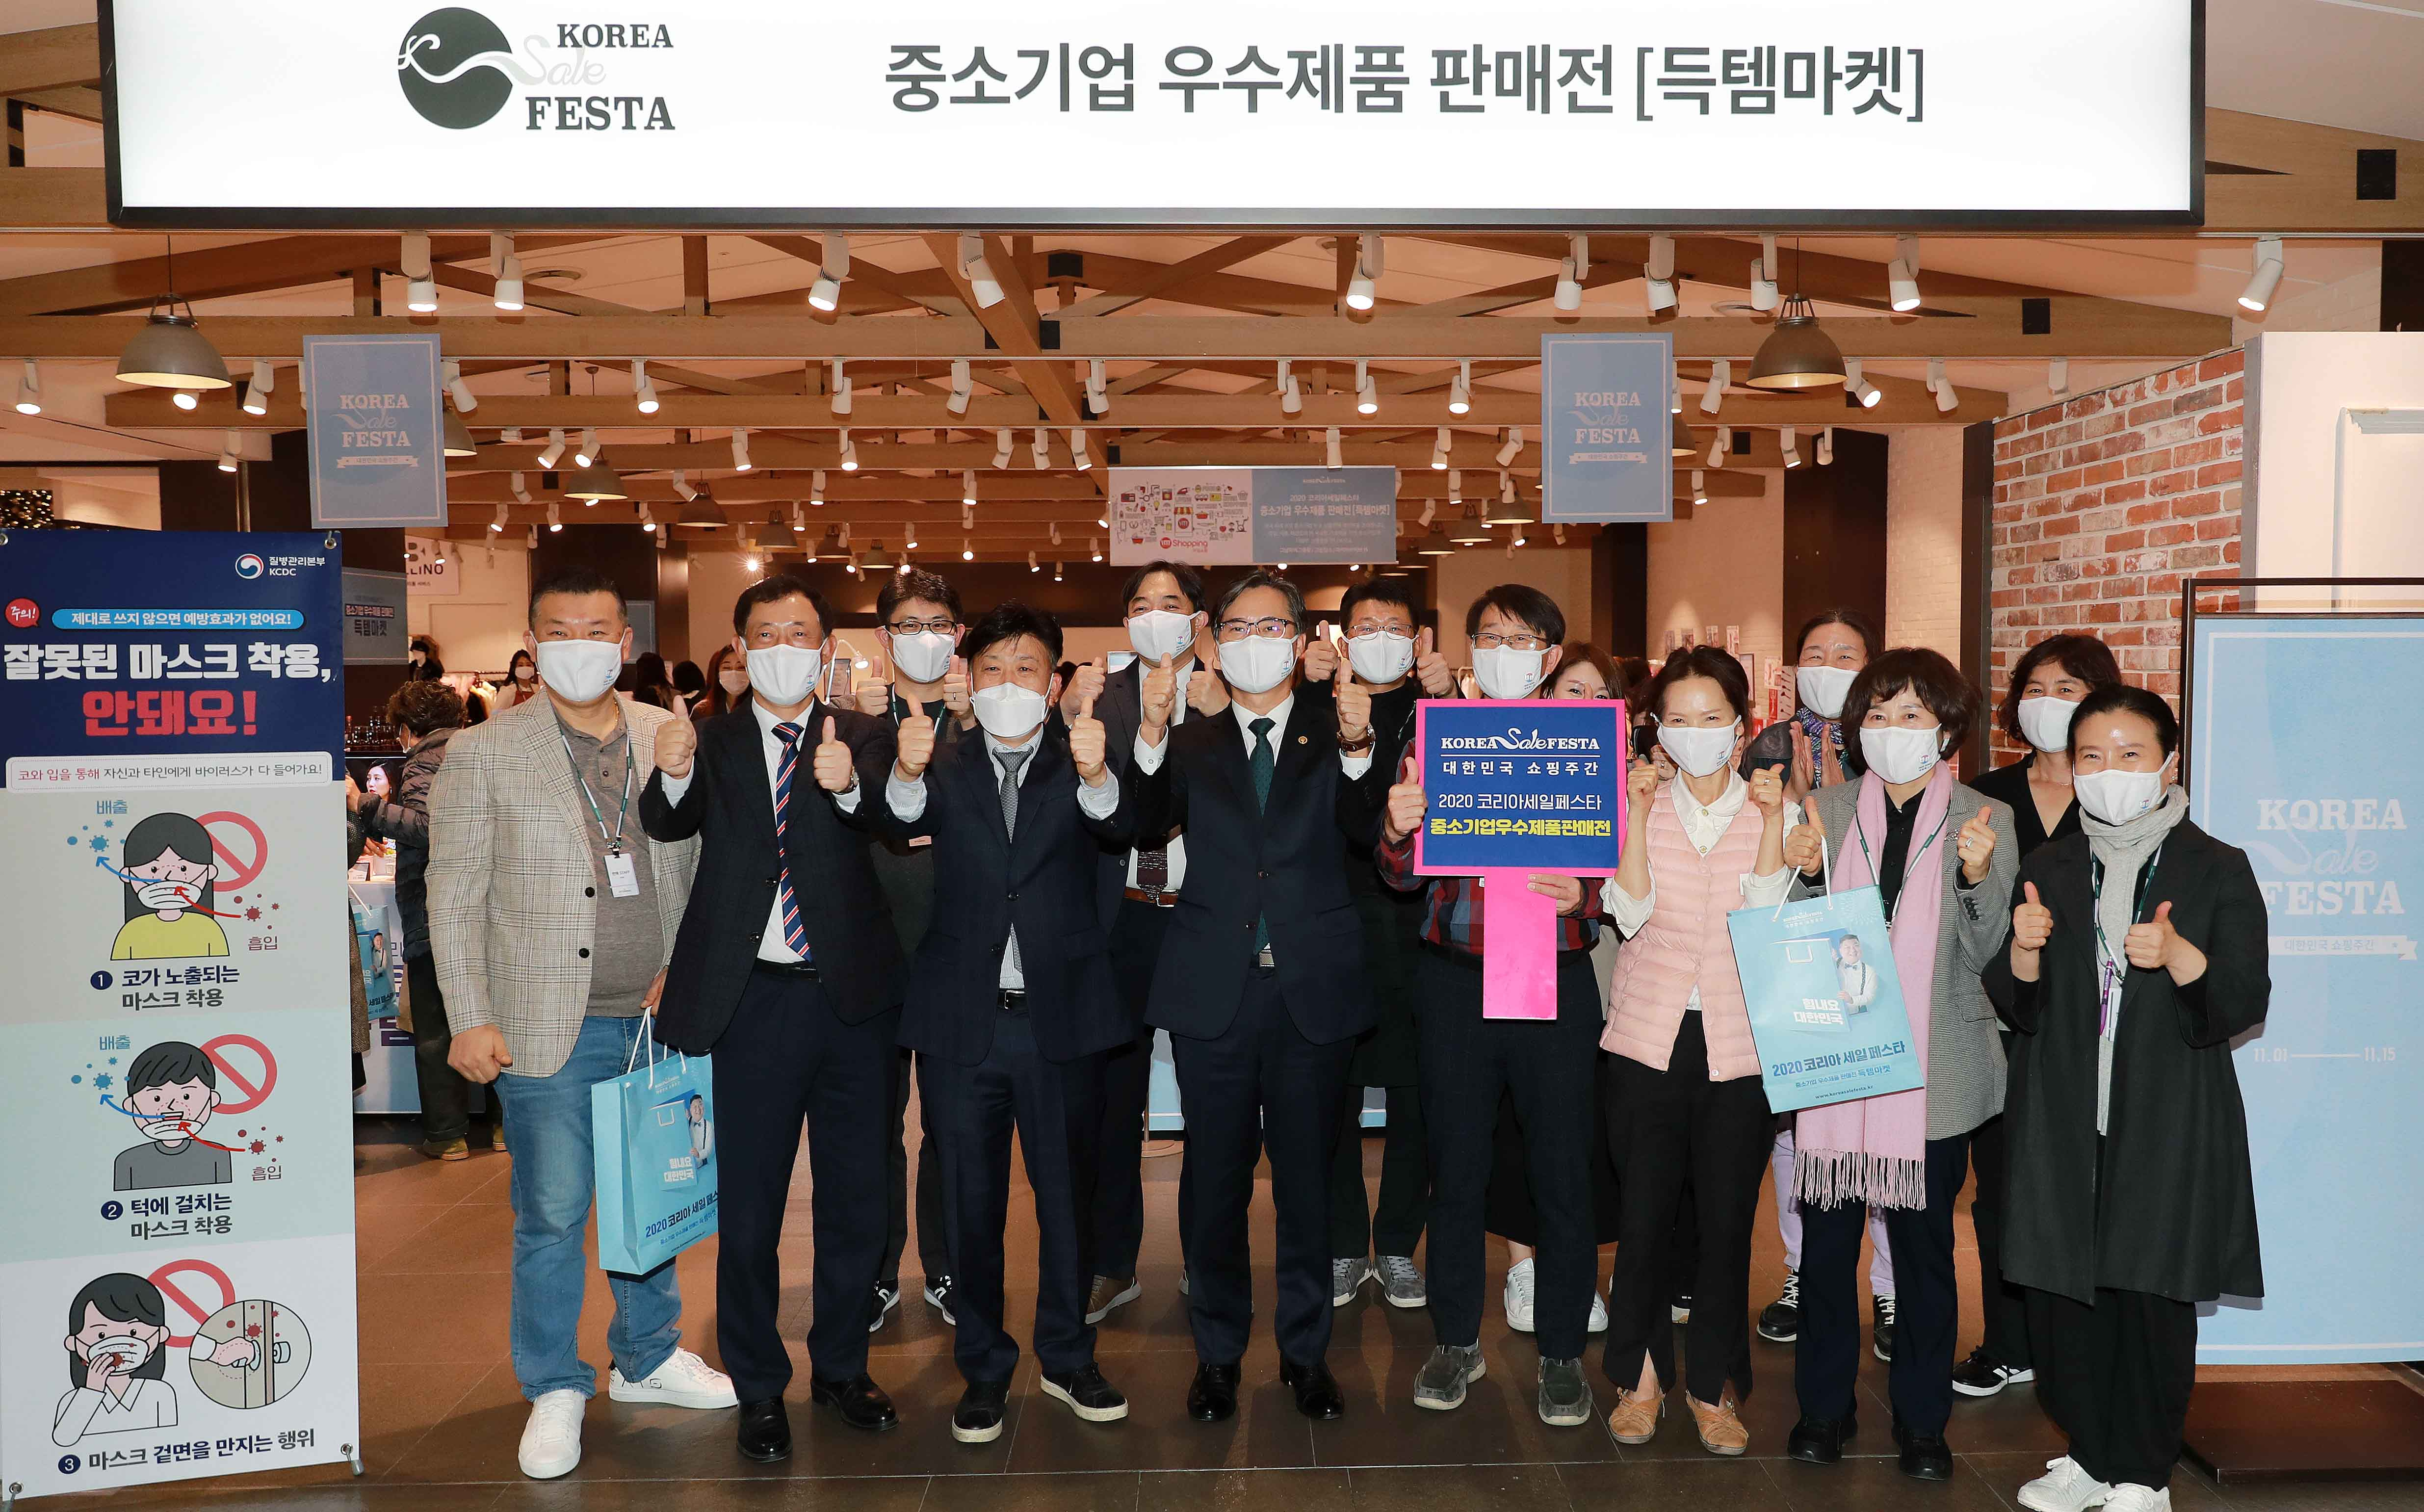 Vice Minister Park visits exhibition site for small businesses as part of Korea Sale Festa Image 0